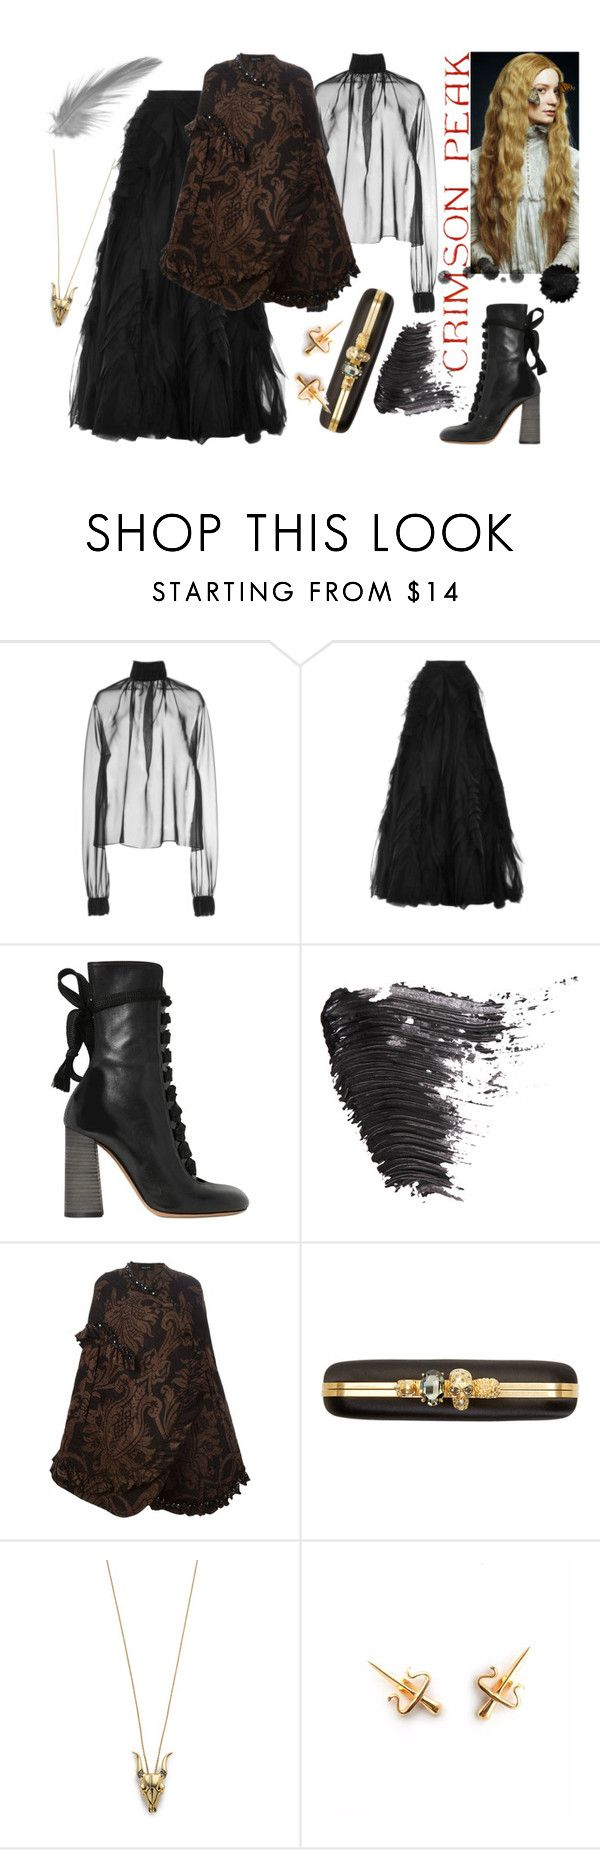 """""""Indulge Your Dark Side with Crimson Peak"""" by erindream ❤ liked on Polyvore featuring Wes Gordon, Monique Lhuillier, Chloé, Topshop, Simone Rocha, Alexander McQueen, House of Harlow 1960 and LeiVanKash"""